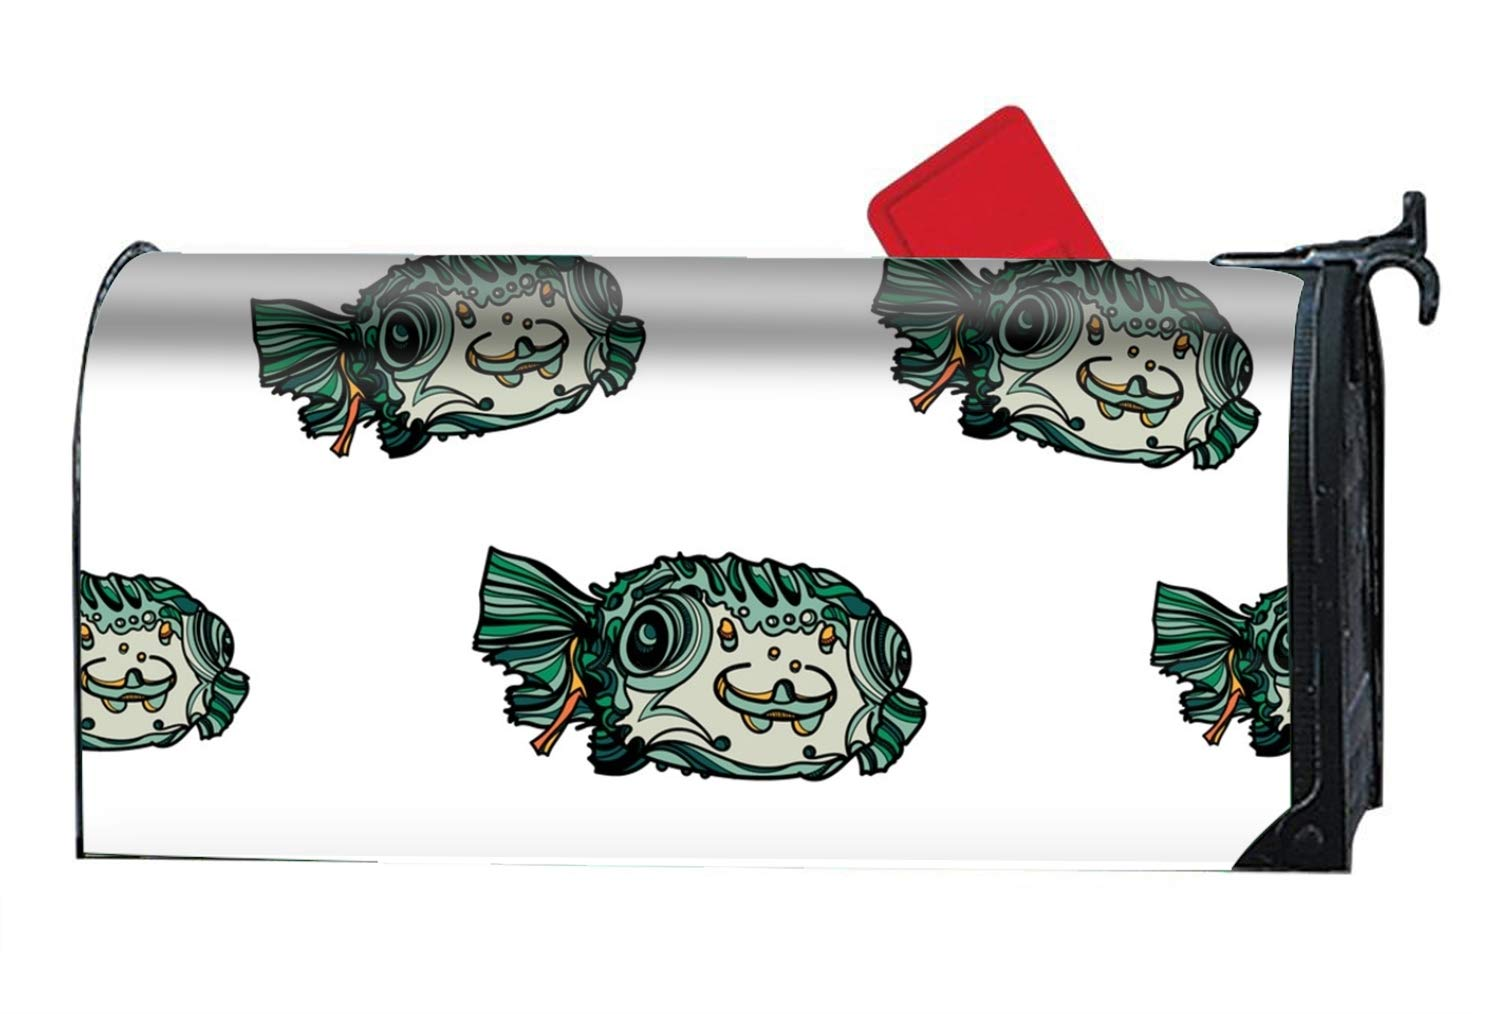 buxten Unique Mailbox Makeover Green Fish Lightweight Attractive Mailbox Covers Garden Magnetic by buxten